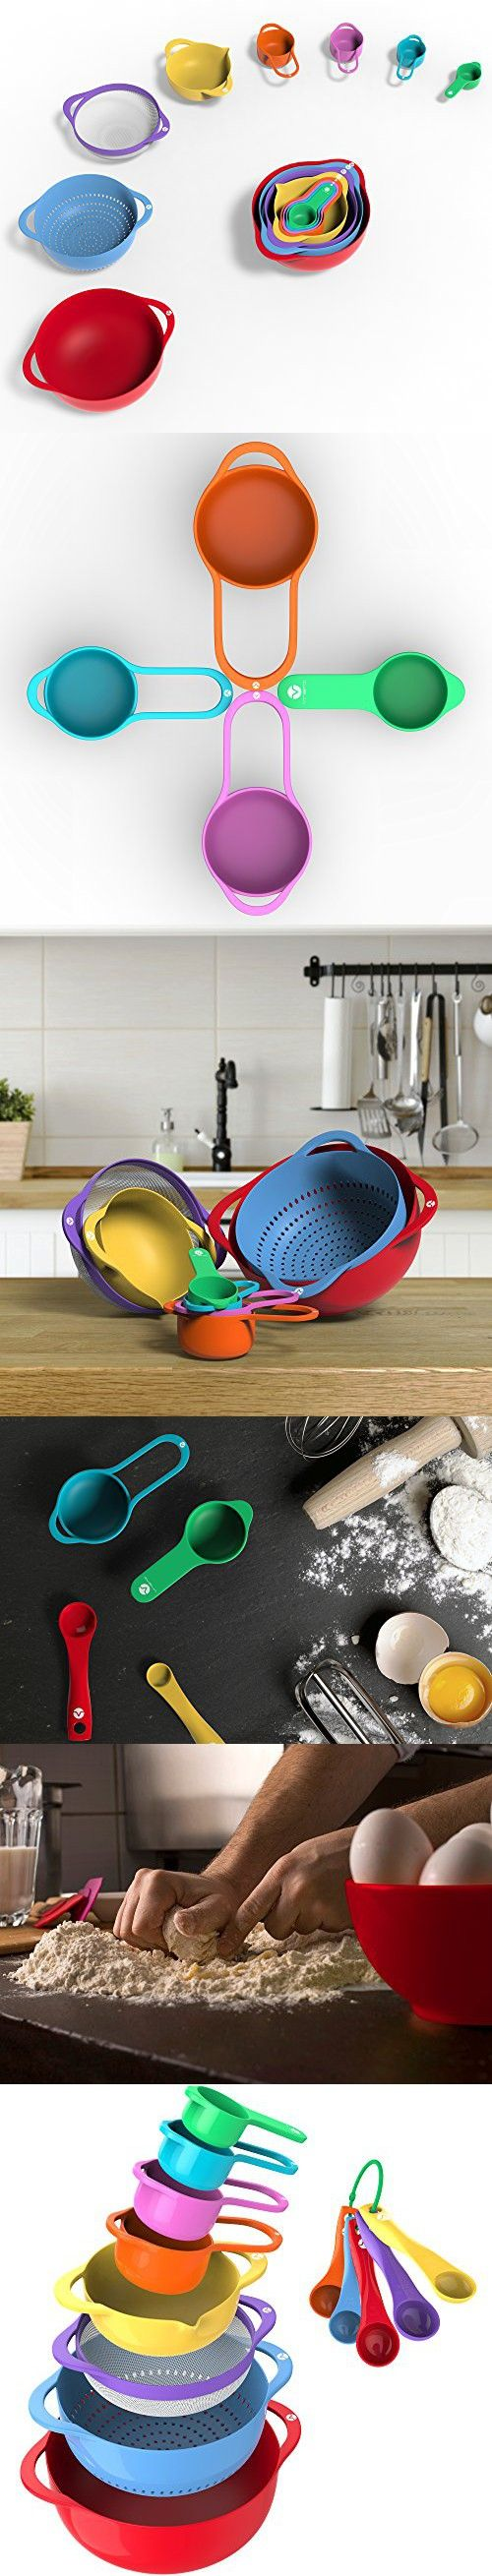 Vremi 15 Piece Mixing Bowl Set with Measuring Cups and Spoons - Large and Small Plastic Mixing Bowls with Colander and Micro Strainer - Nesting Colorful Kitchen Bowls for Baking and More